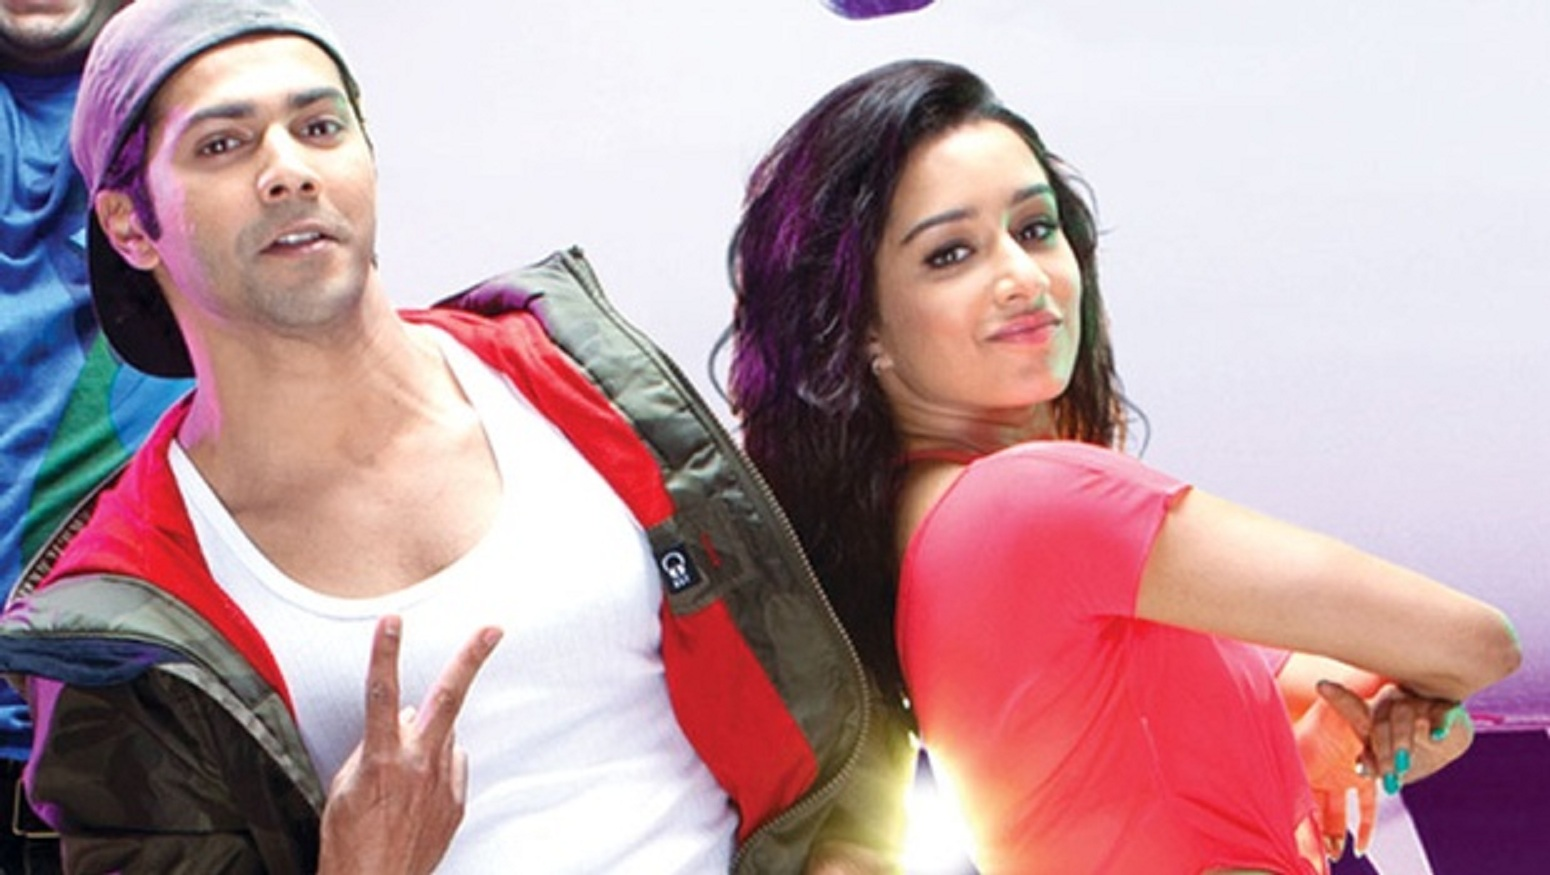 Varun Dhawan Shraddha Kapoor Couple Wallpaper Download Every